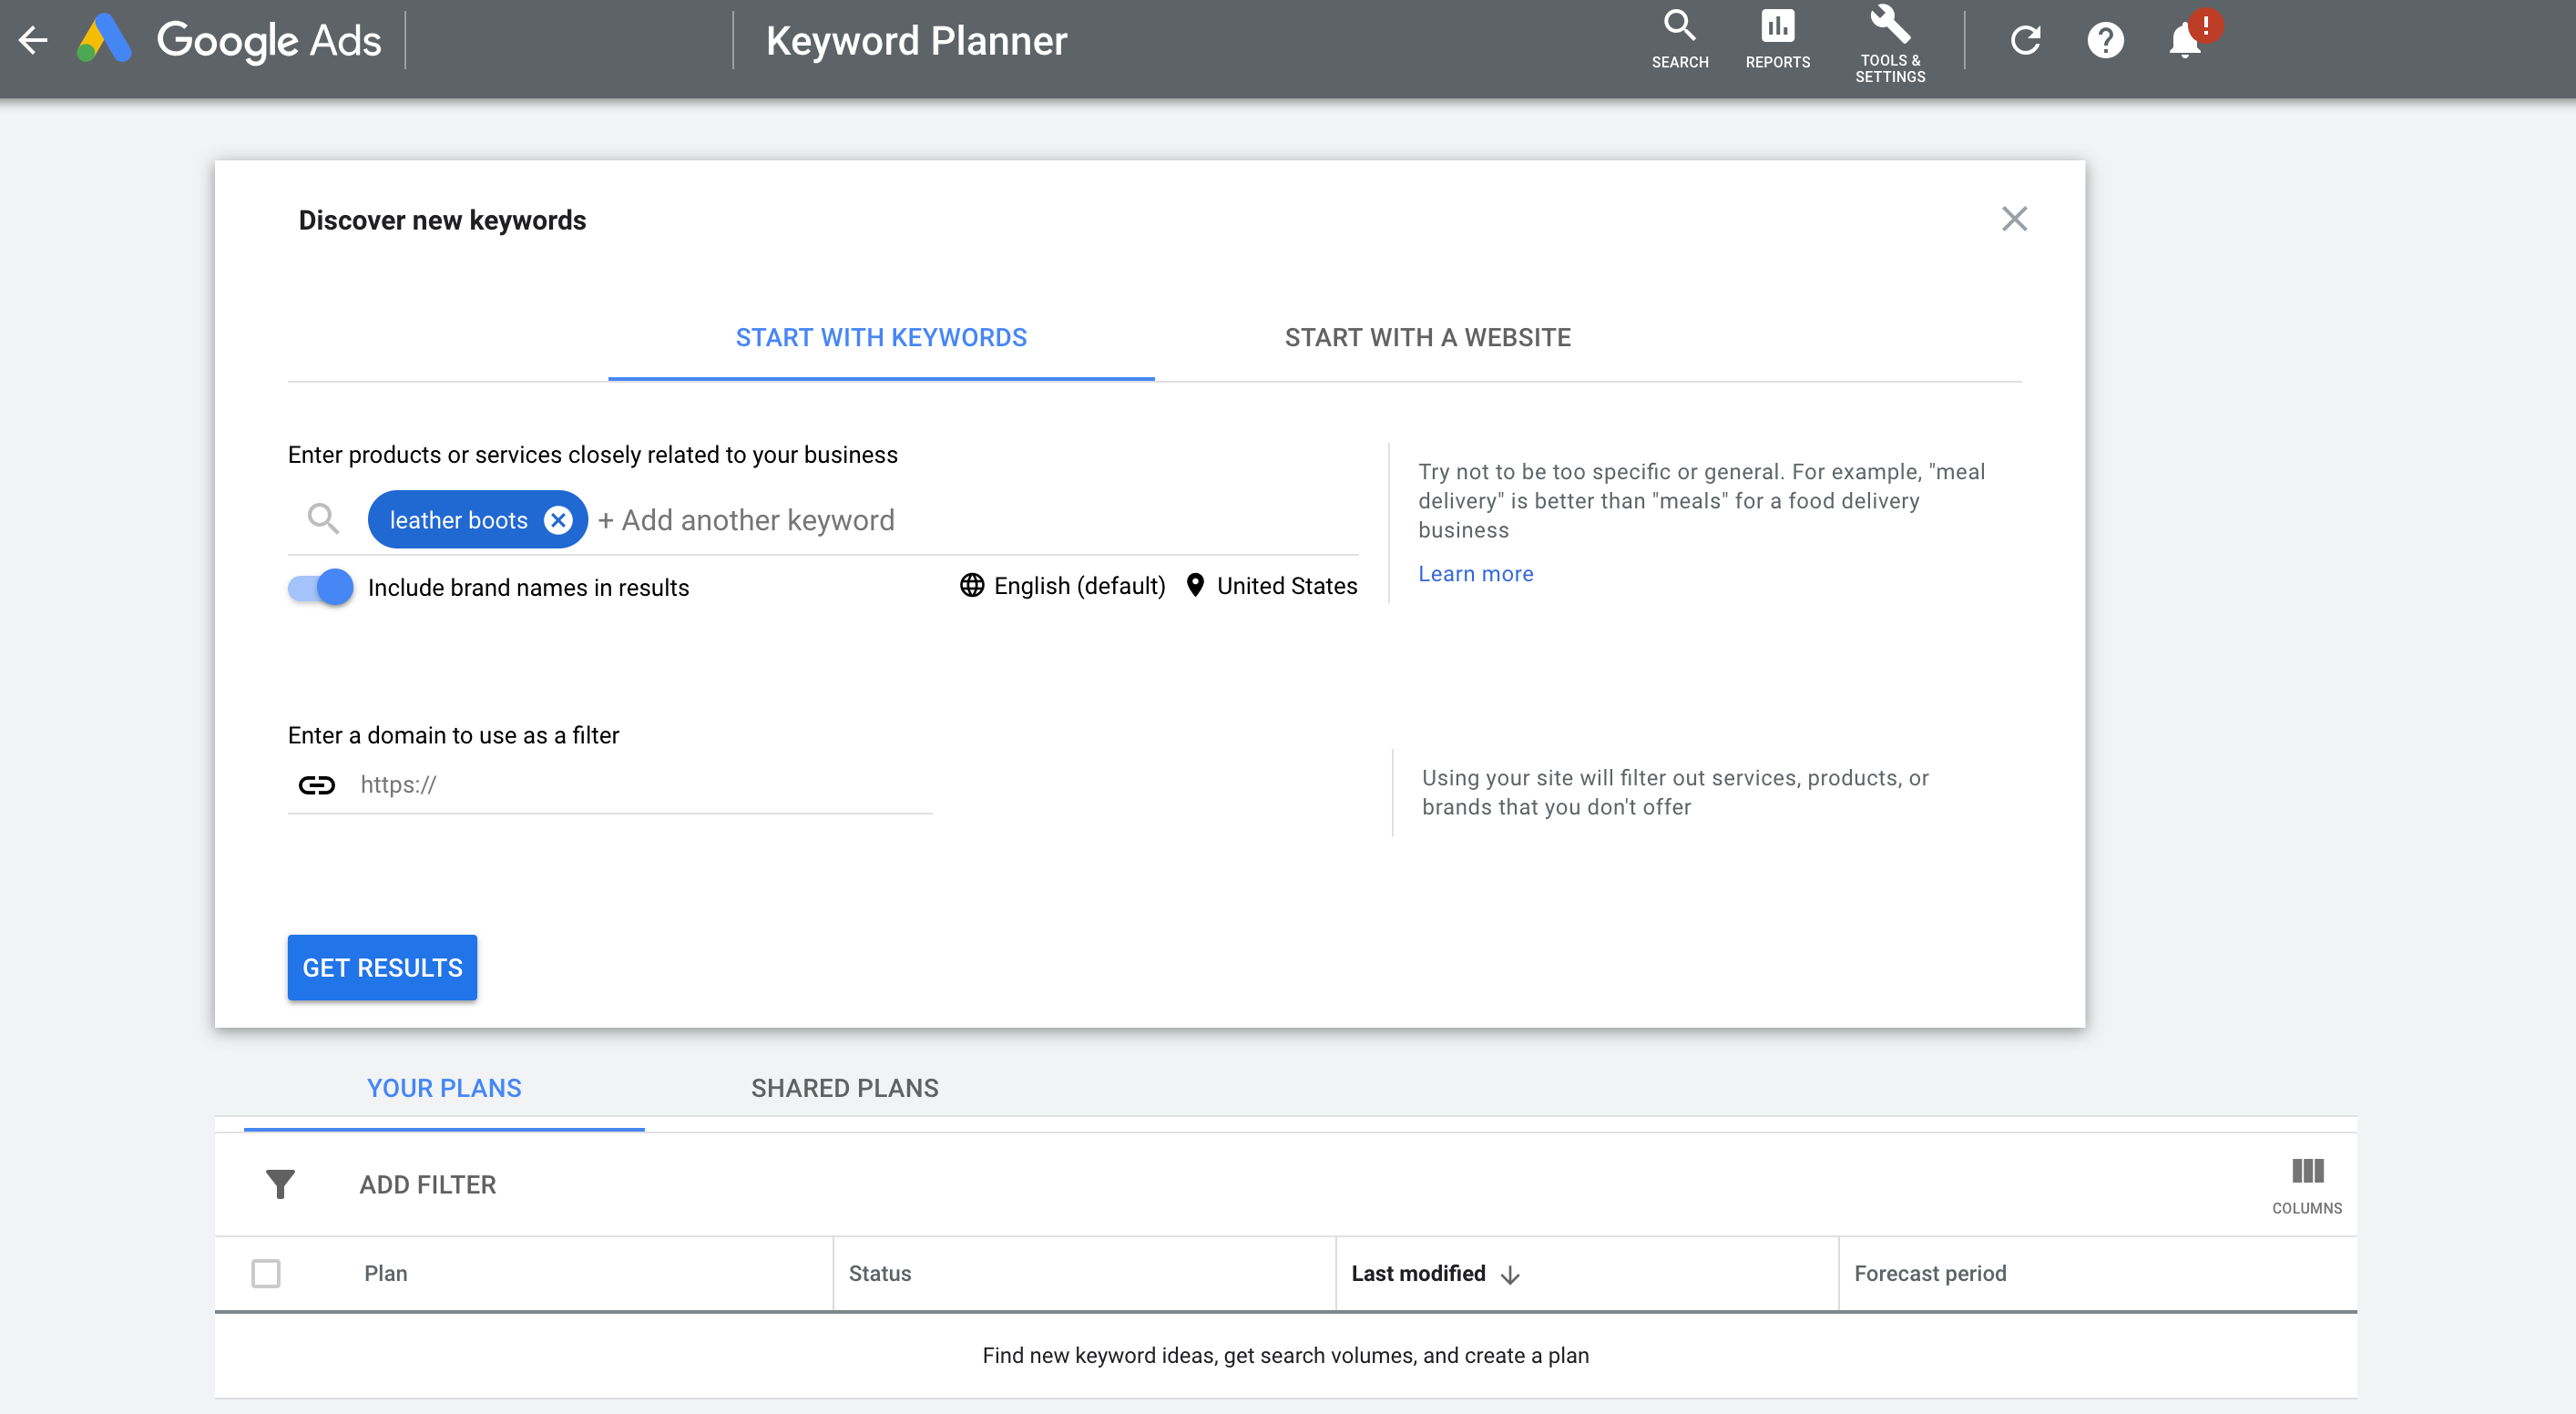 Discover new keywords section of Google Ad Planner